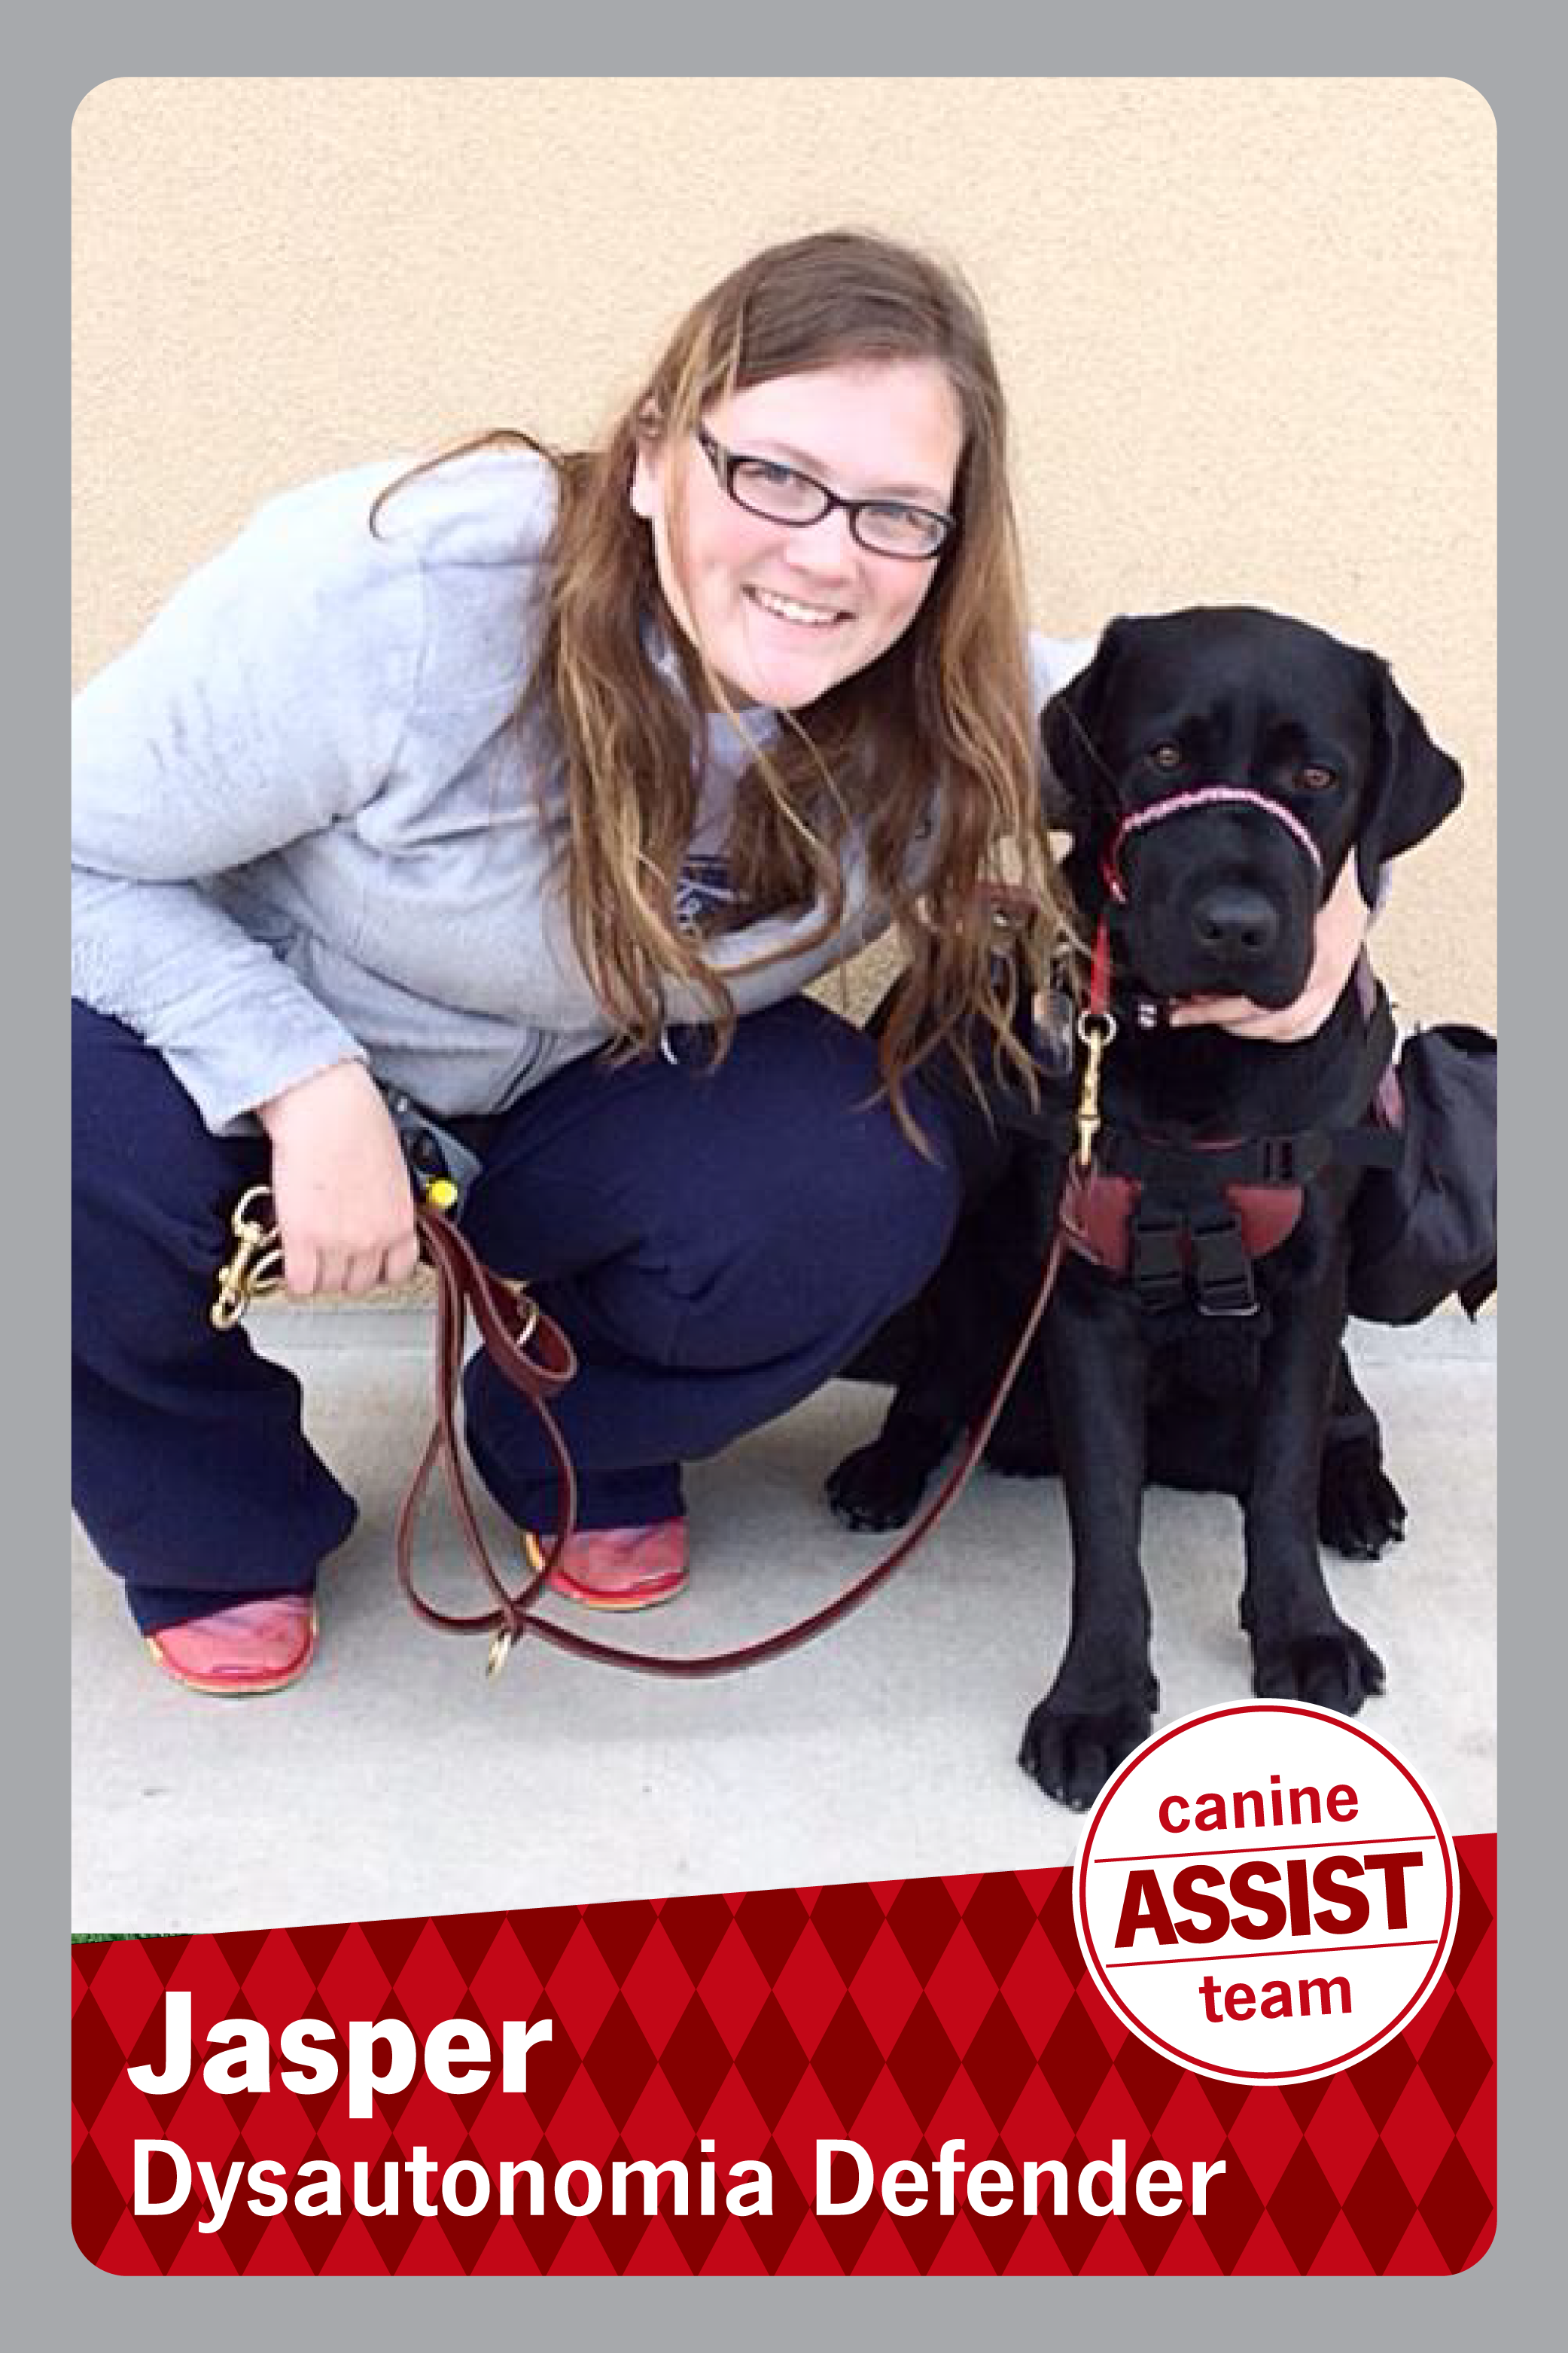 Picture of a girl squatting next to a sitting dog, the caption reads Jasper Dysautonomia Defender